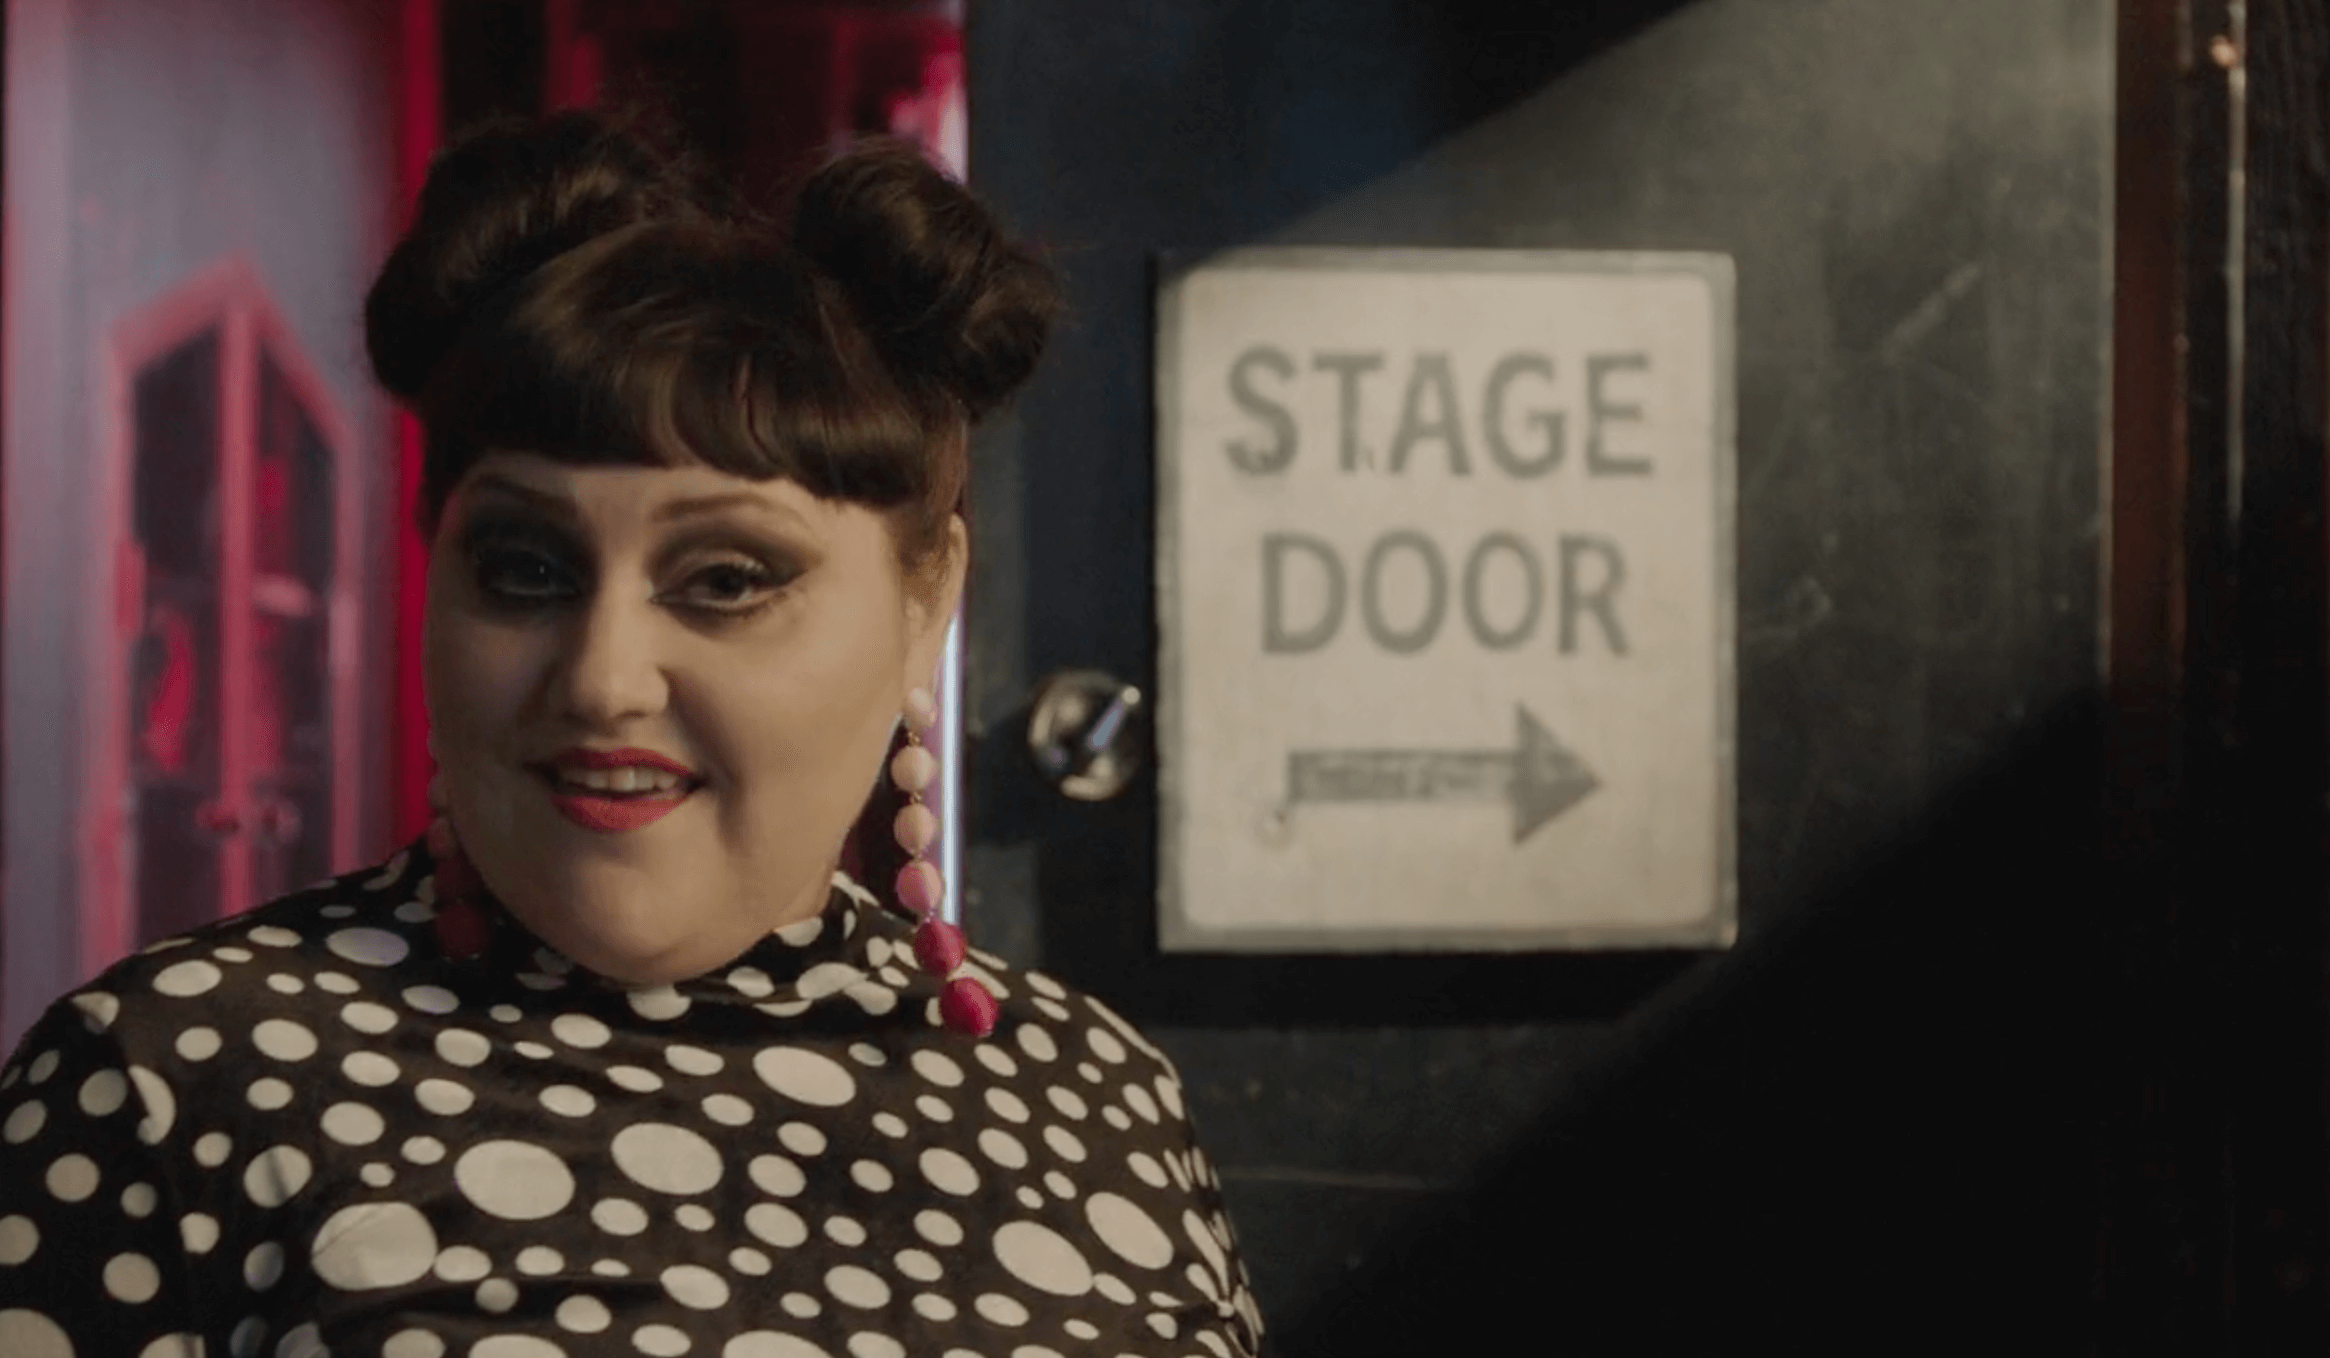 """Film """"Me. Unlimited."""" featuring Beth Ditto for Zalando directed by Andrew Rothschild"""